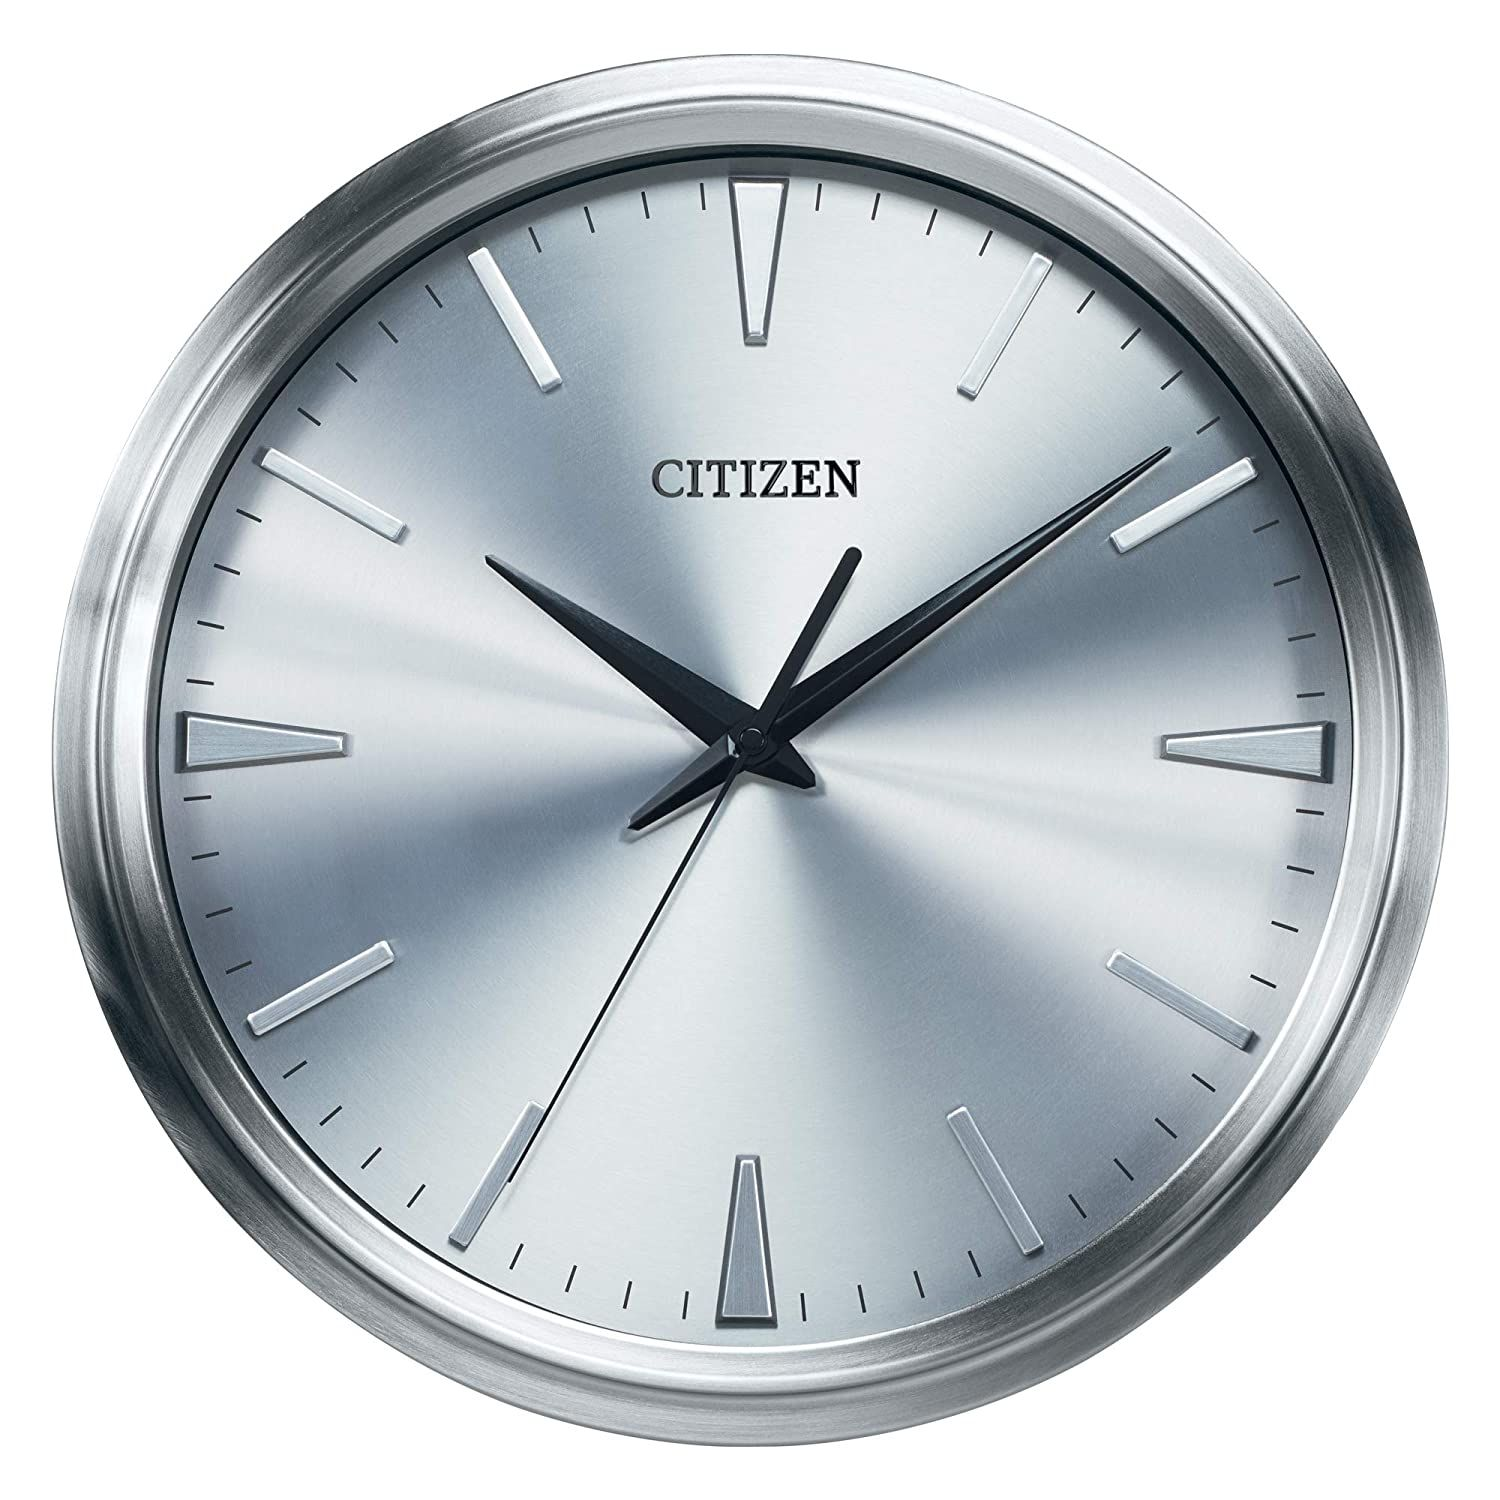 Citizen Cc2004 Gallery Wall Clock Silver Tone Click Image To Review More Details This Is An Affiliate Lin In 2020 Metal Wall Clock Gallery Wall Clock Wall Clock